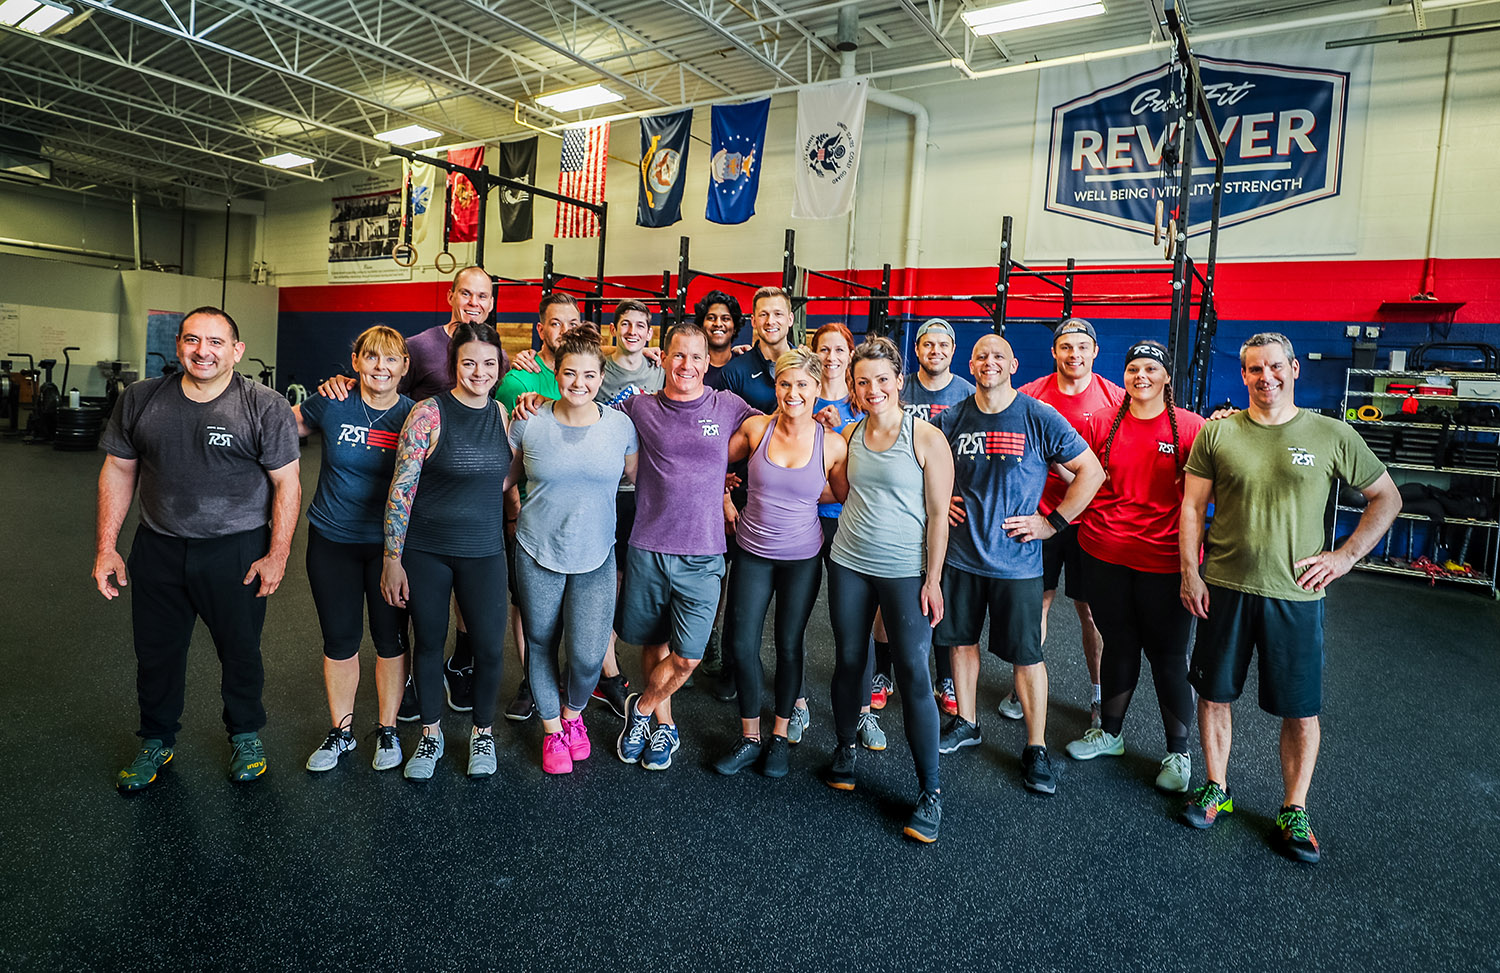 You'll find a community whose energy and support will leave you anxiously awaiting your next visit. You'll find workouts that will not only challenge you physically and mentally, but will prove that you are capable of far more than you ever thought. -